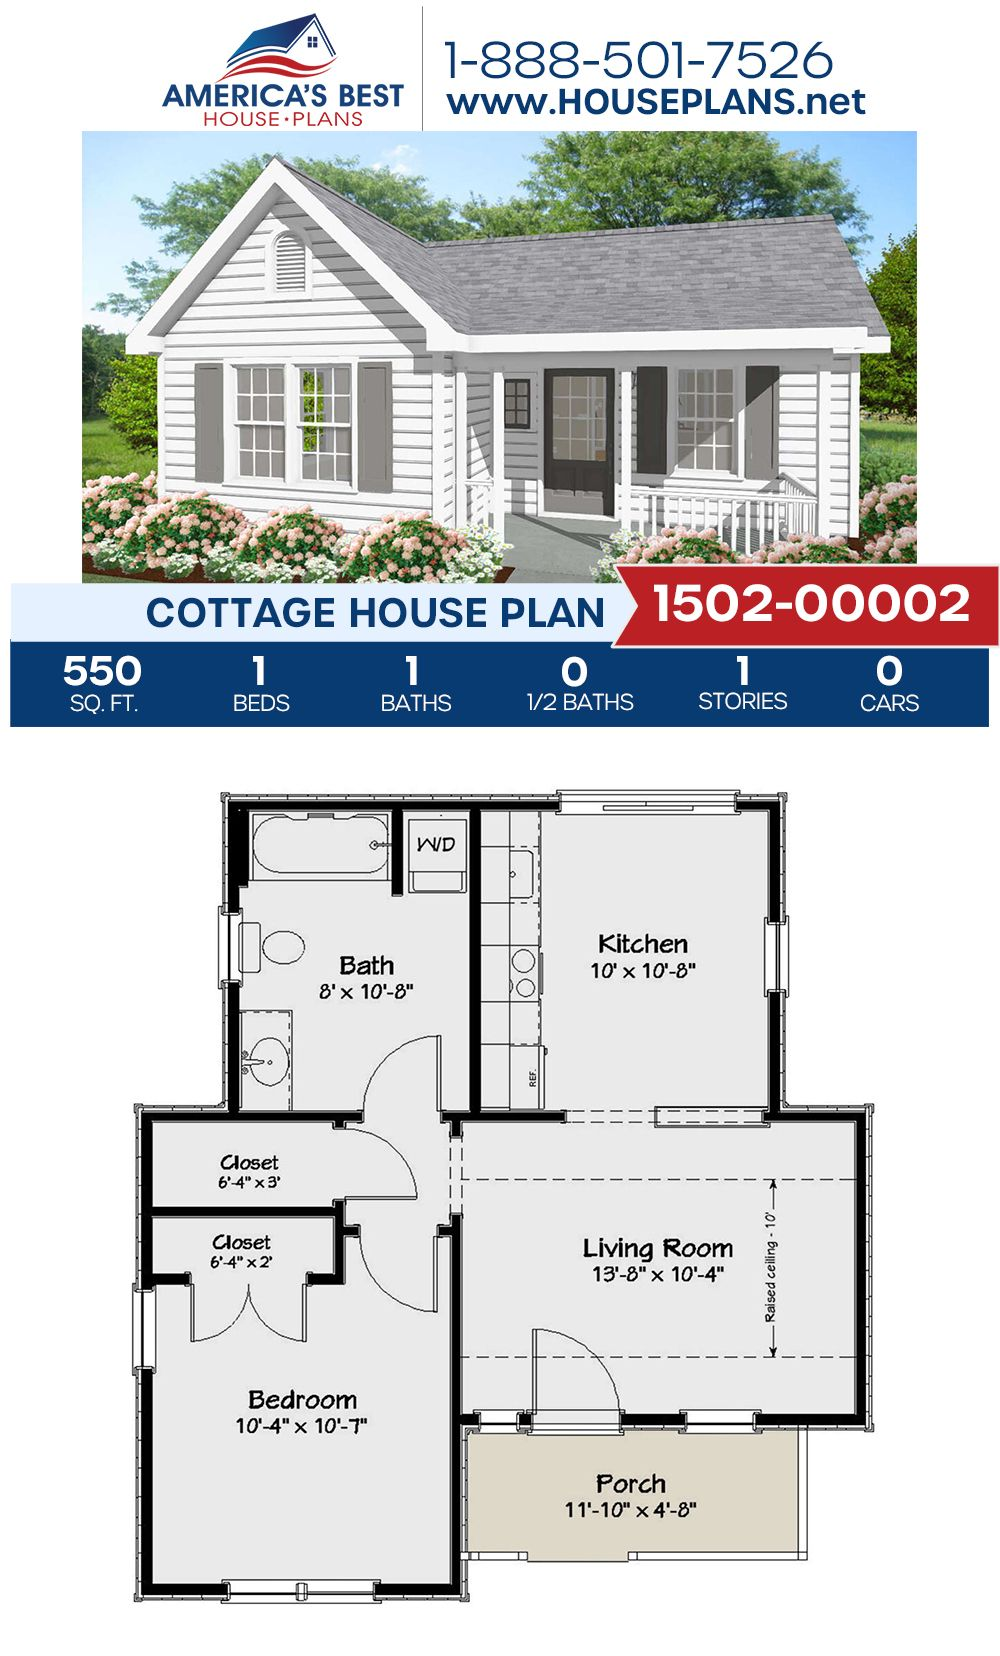 House Plan 1502 00002 Cottage Plan 550 Square Feet 1 Bedroom 1 Bathroom Guest House Plans Small House Plans Cottage Plan